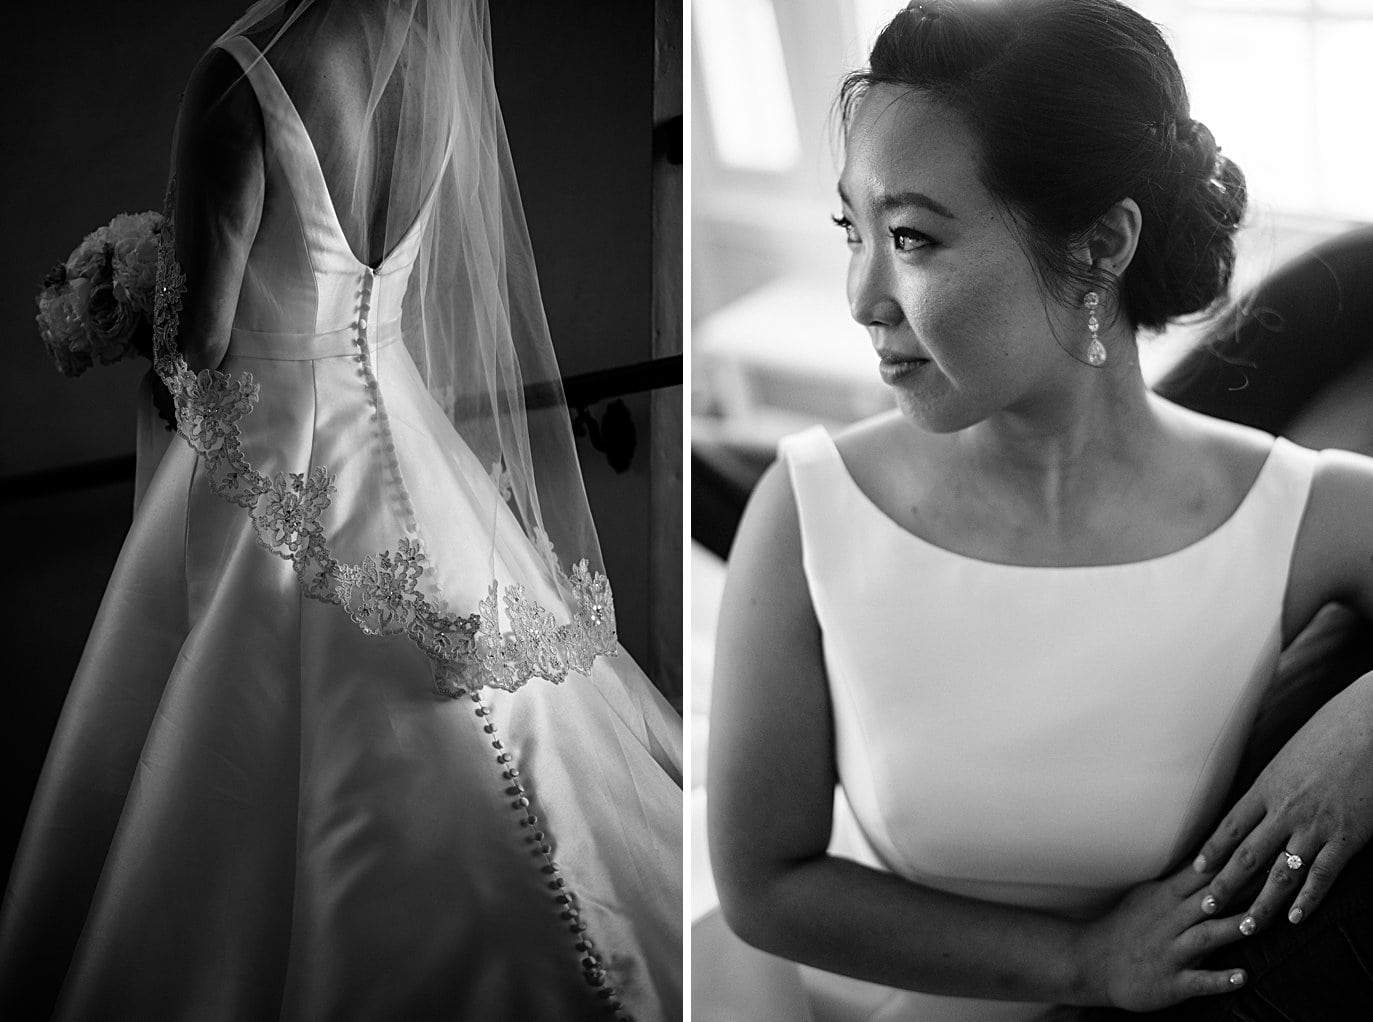 bride by window with classic ballgown wedding dress and lace veil at Highlands Ranch Mansion wedding by Golden wedding photographer Jennie Crate